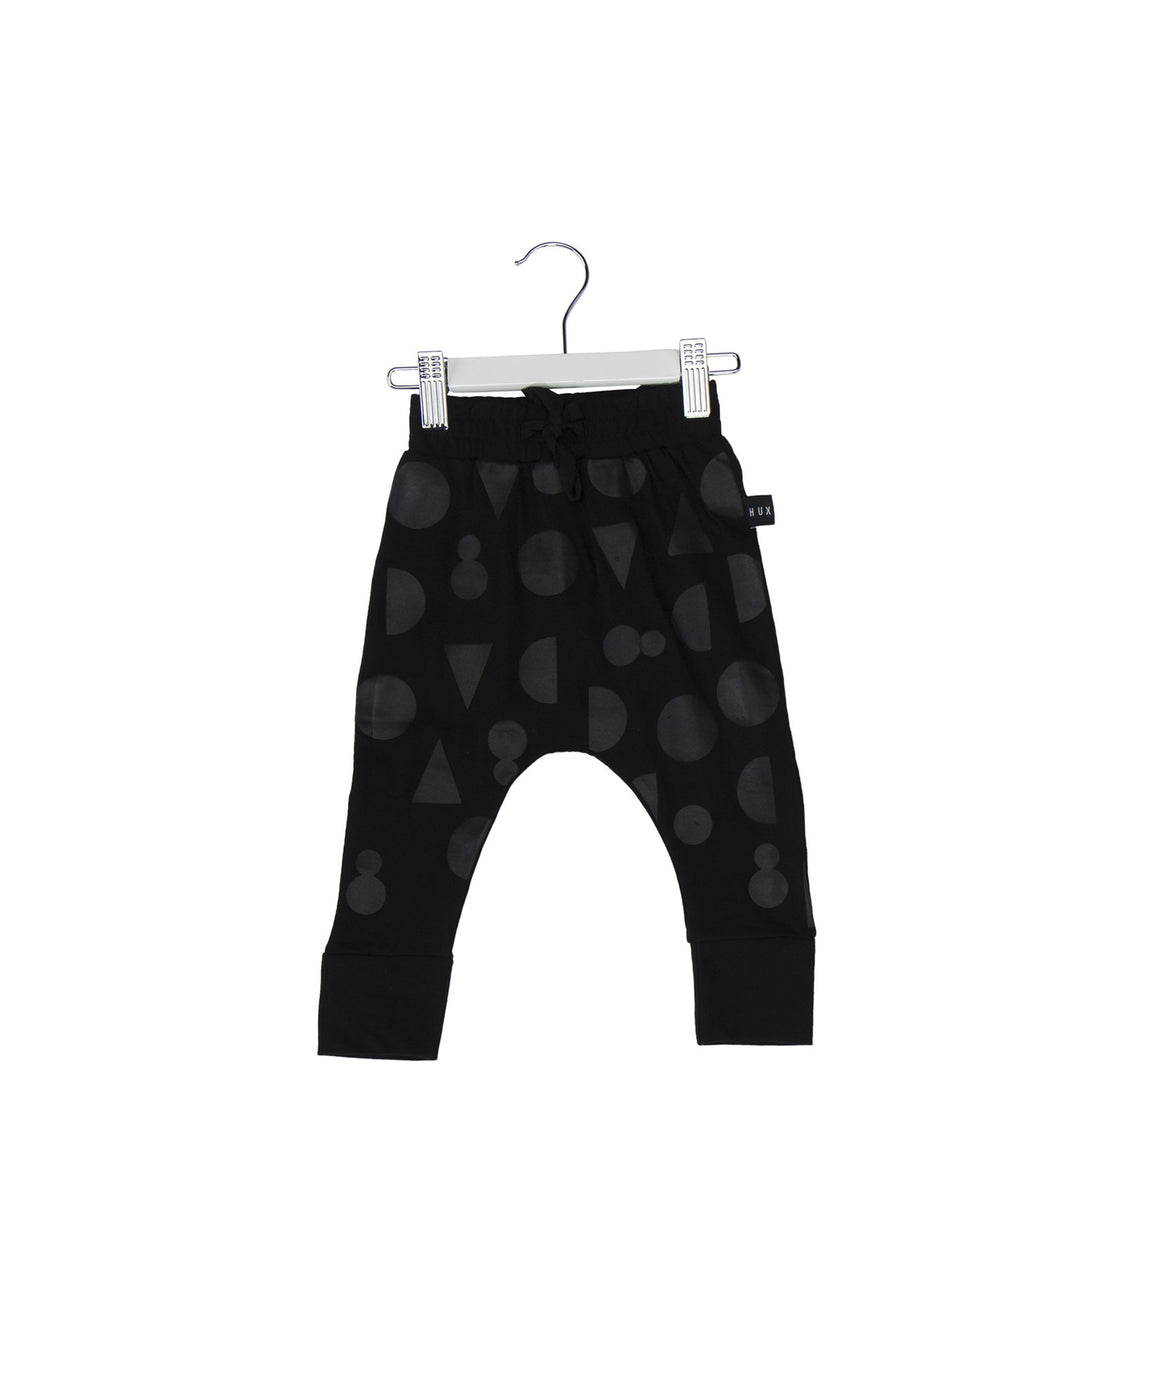 Shapes Black on Black Drop Crotch Pants by Huxbaby